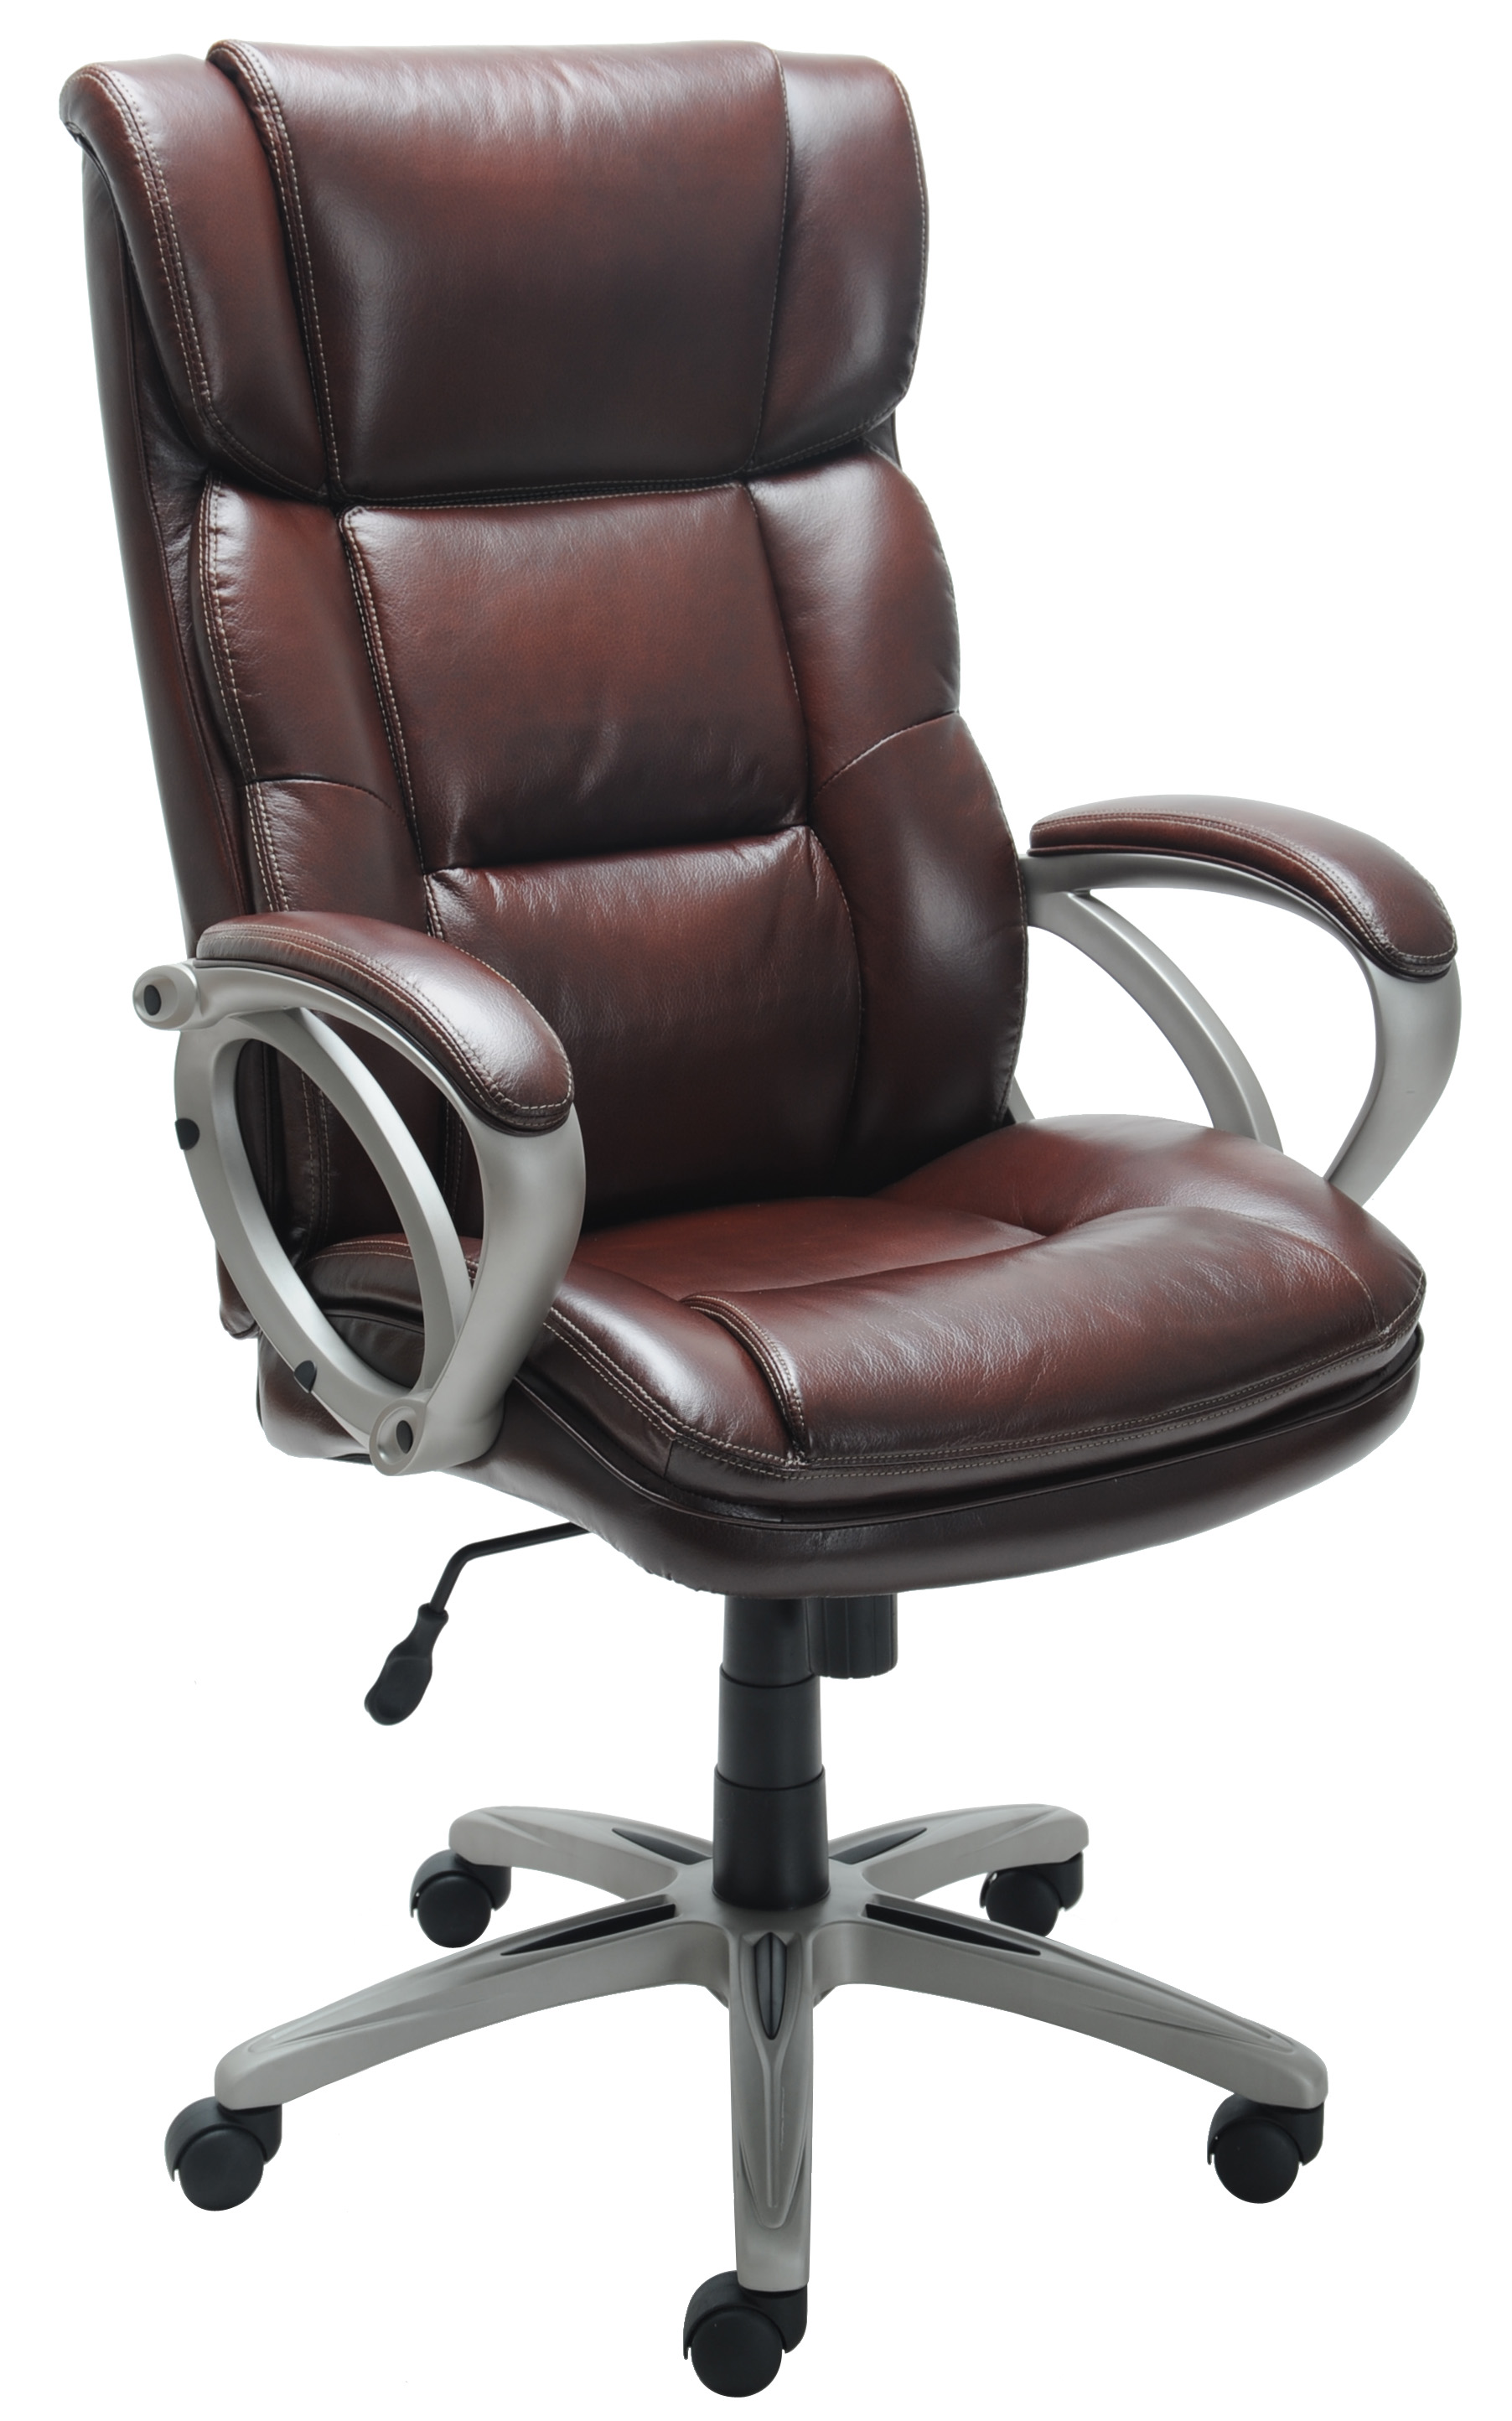 Broyhill Office Chair Broyhill Bonded Leather Executive Desk Adjustable Office